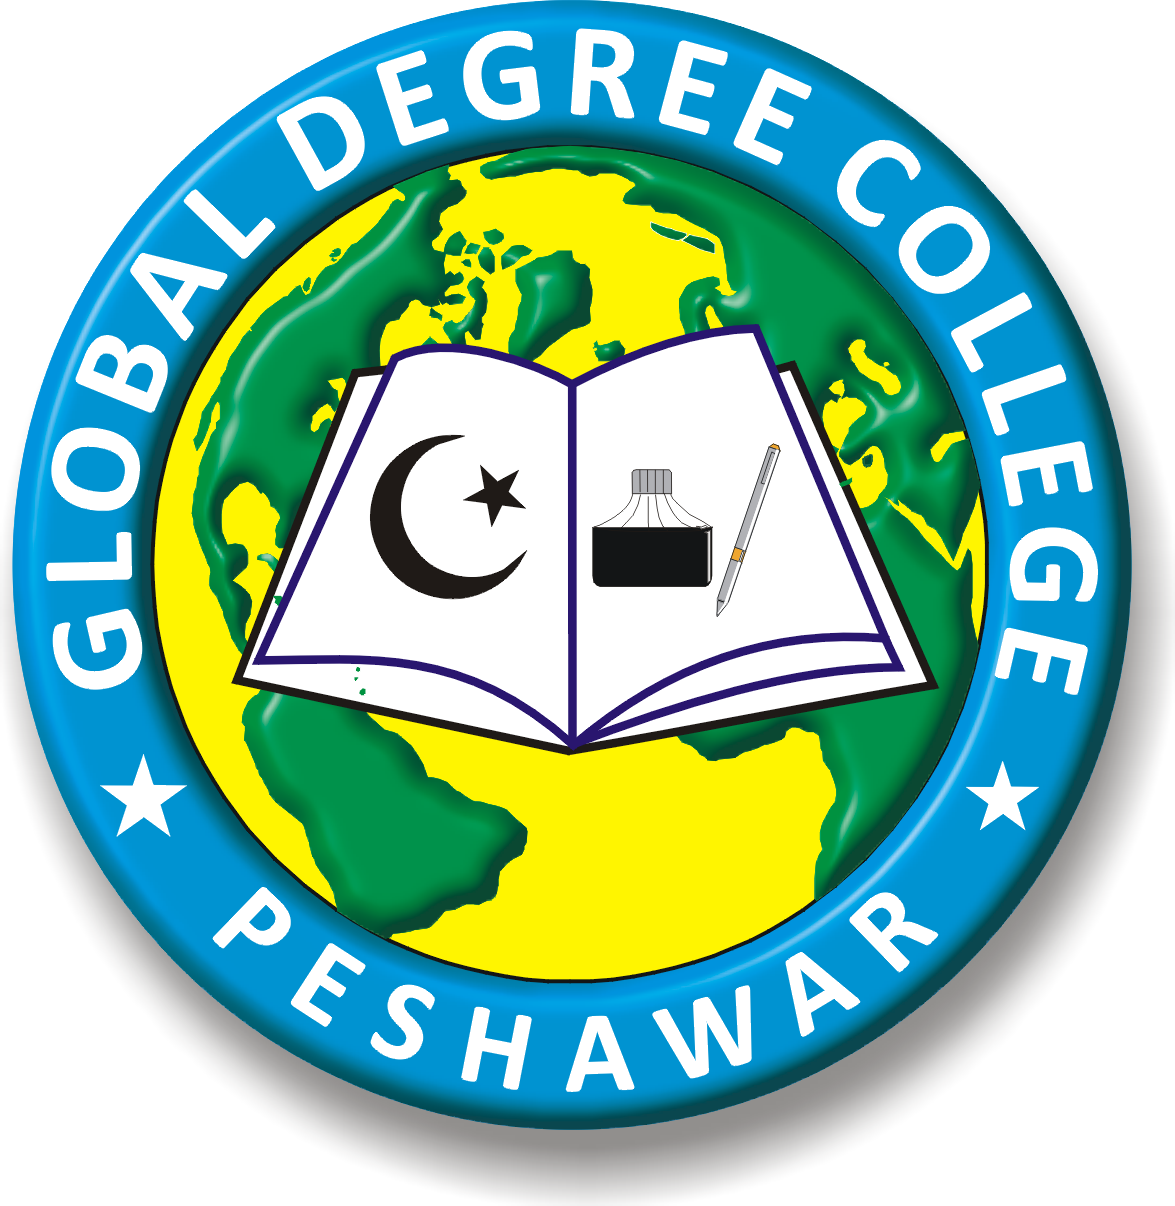 GLOBAL DEGREE COLLEGE